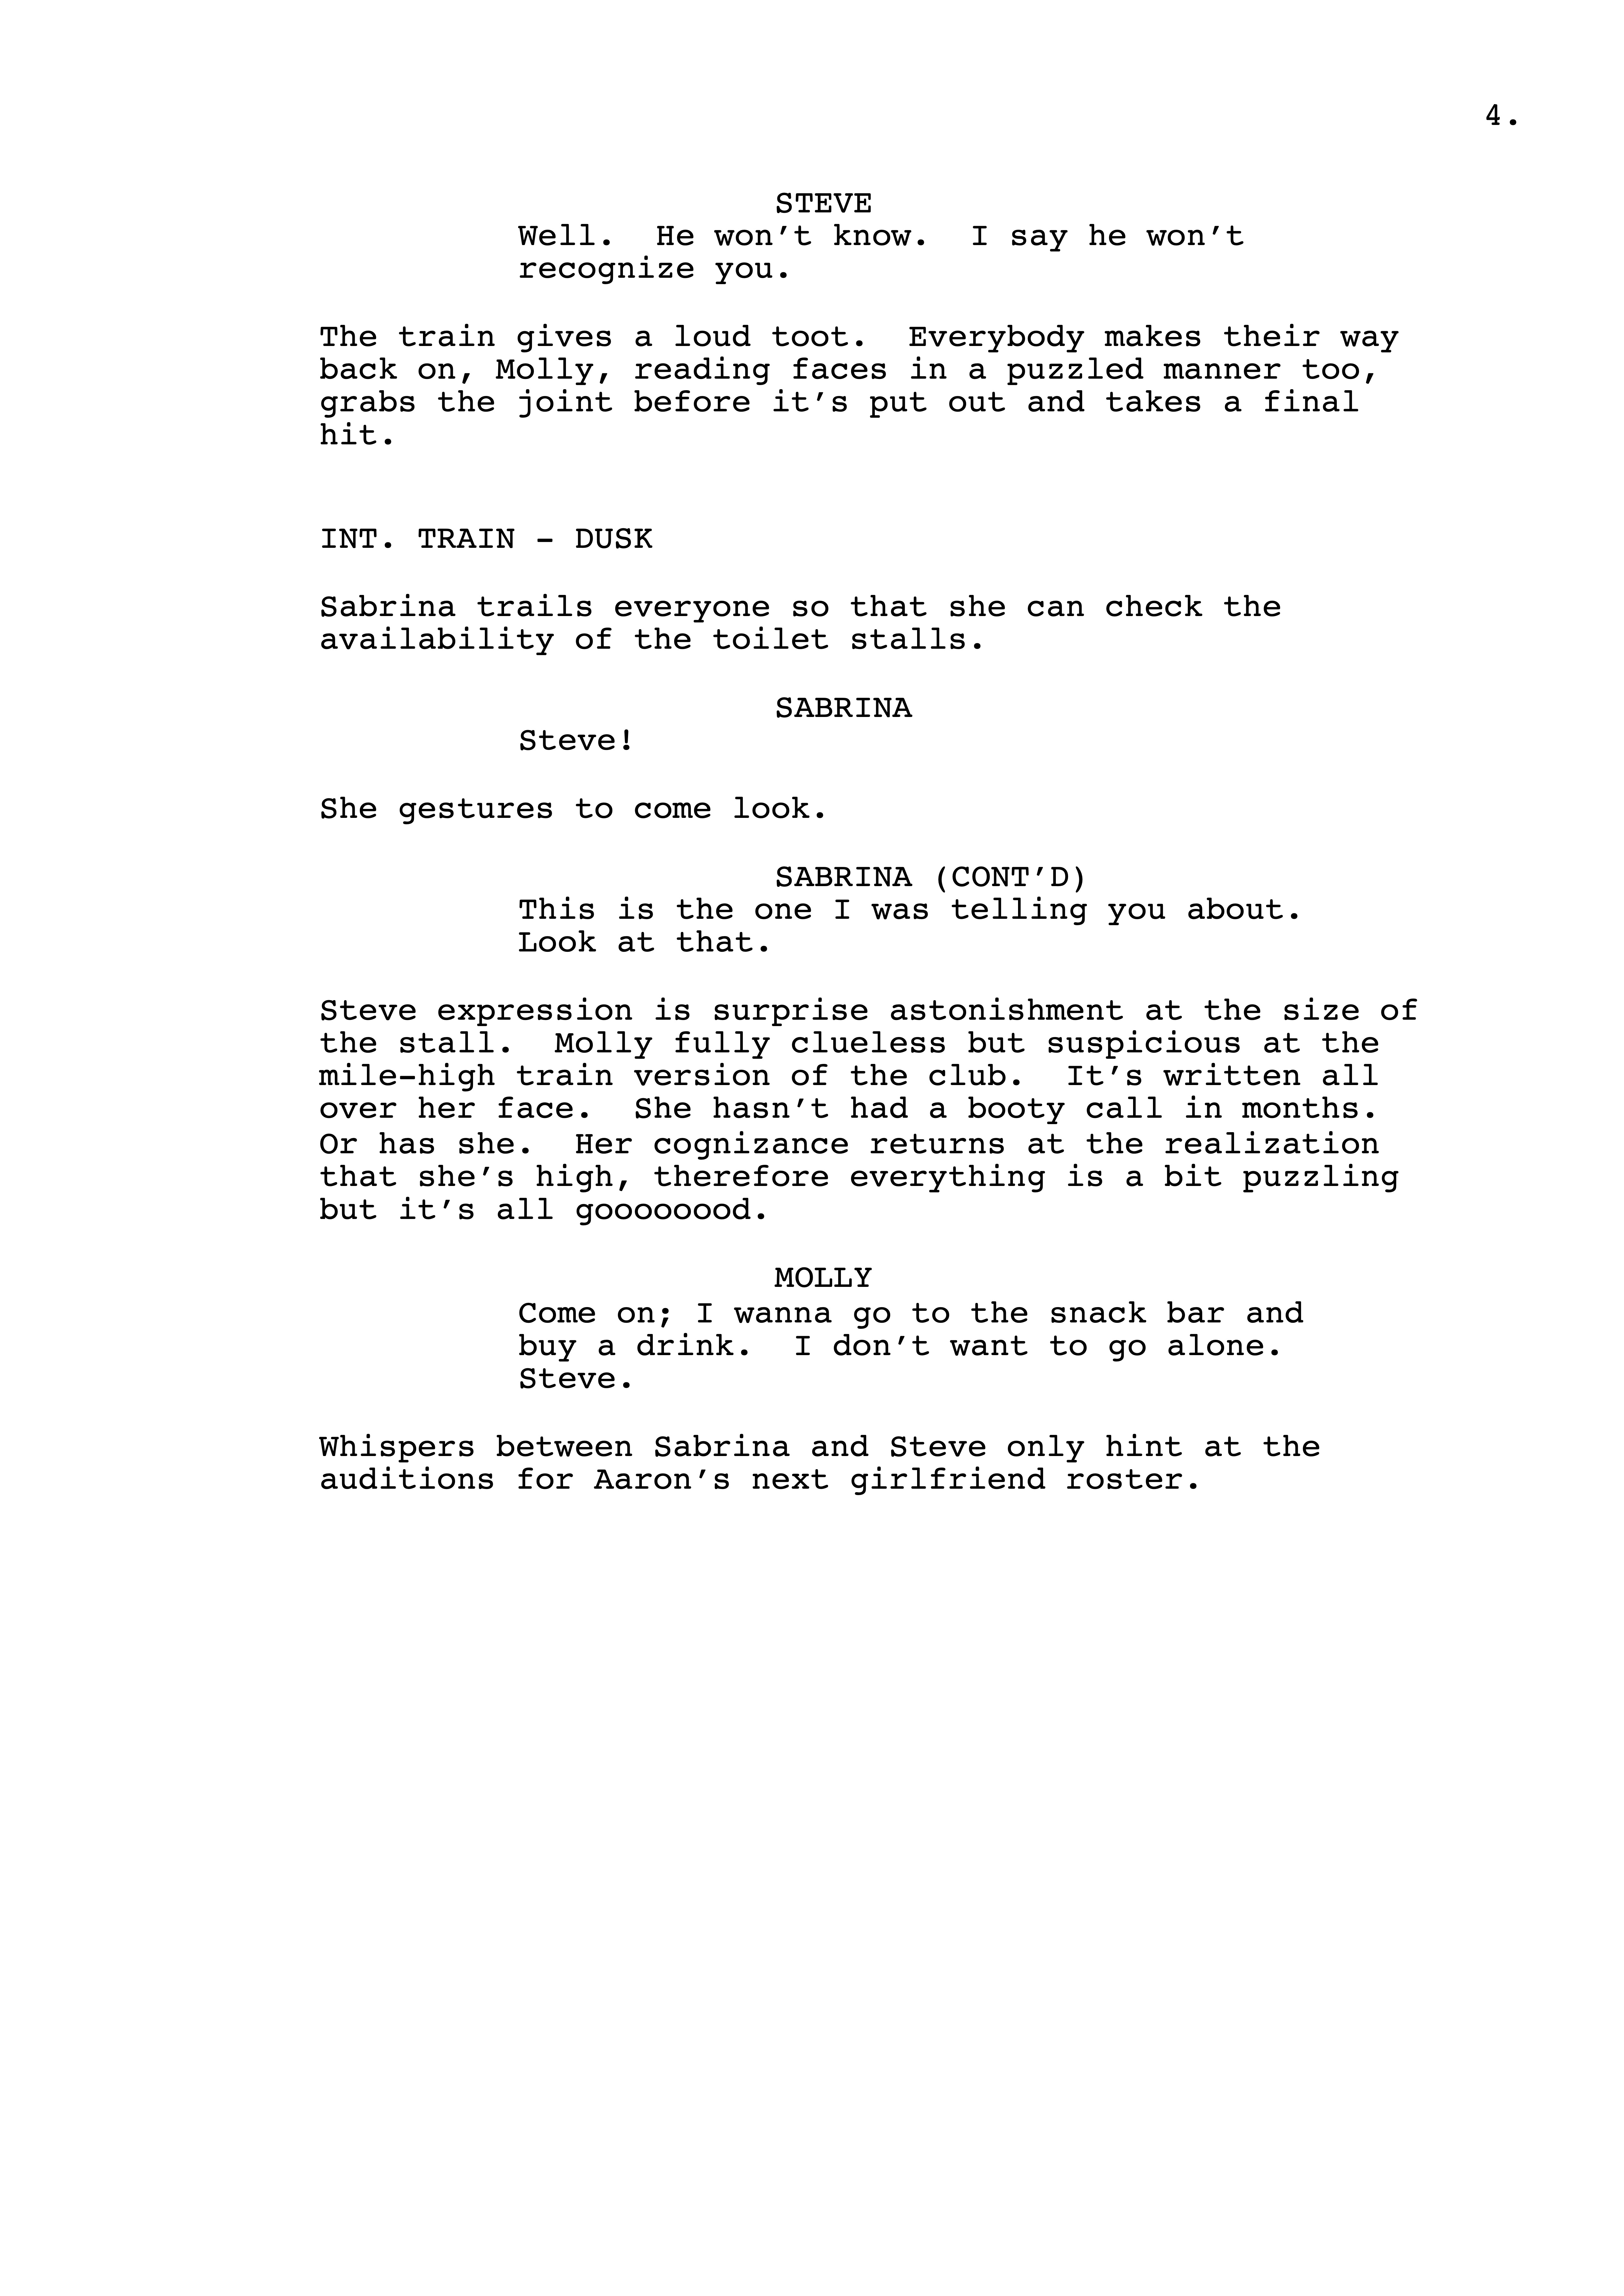 aaron's promiscuity PAGE 4.jpg